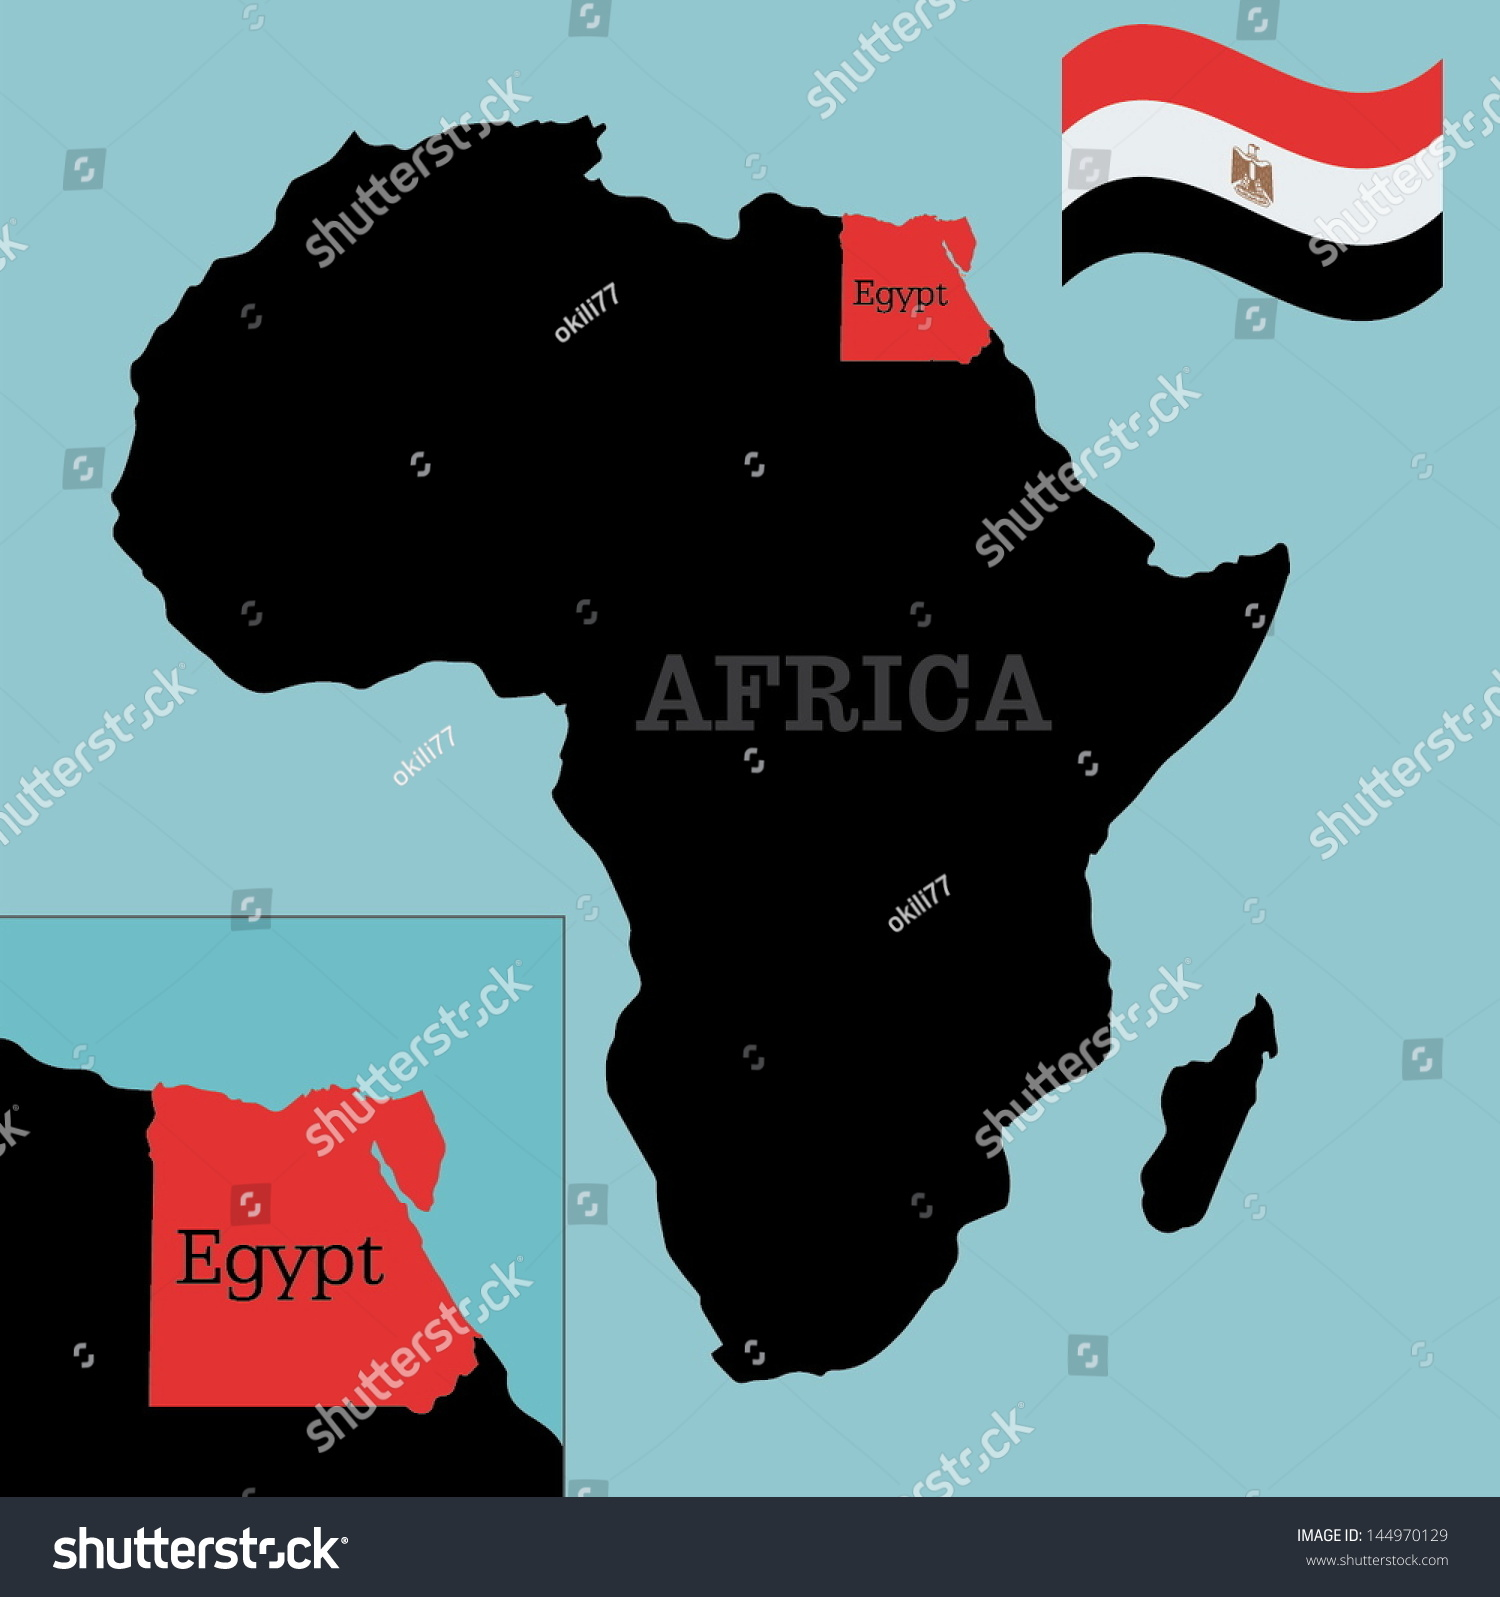 Image of: Egypt Map Flag On Africa Map Stock Vector Royalty Free 144970129